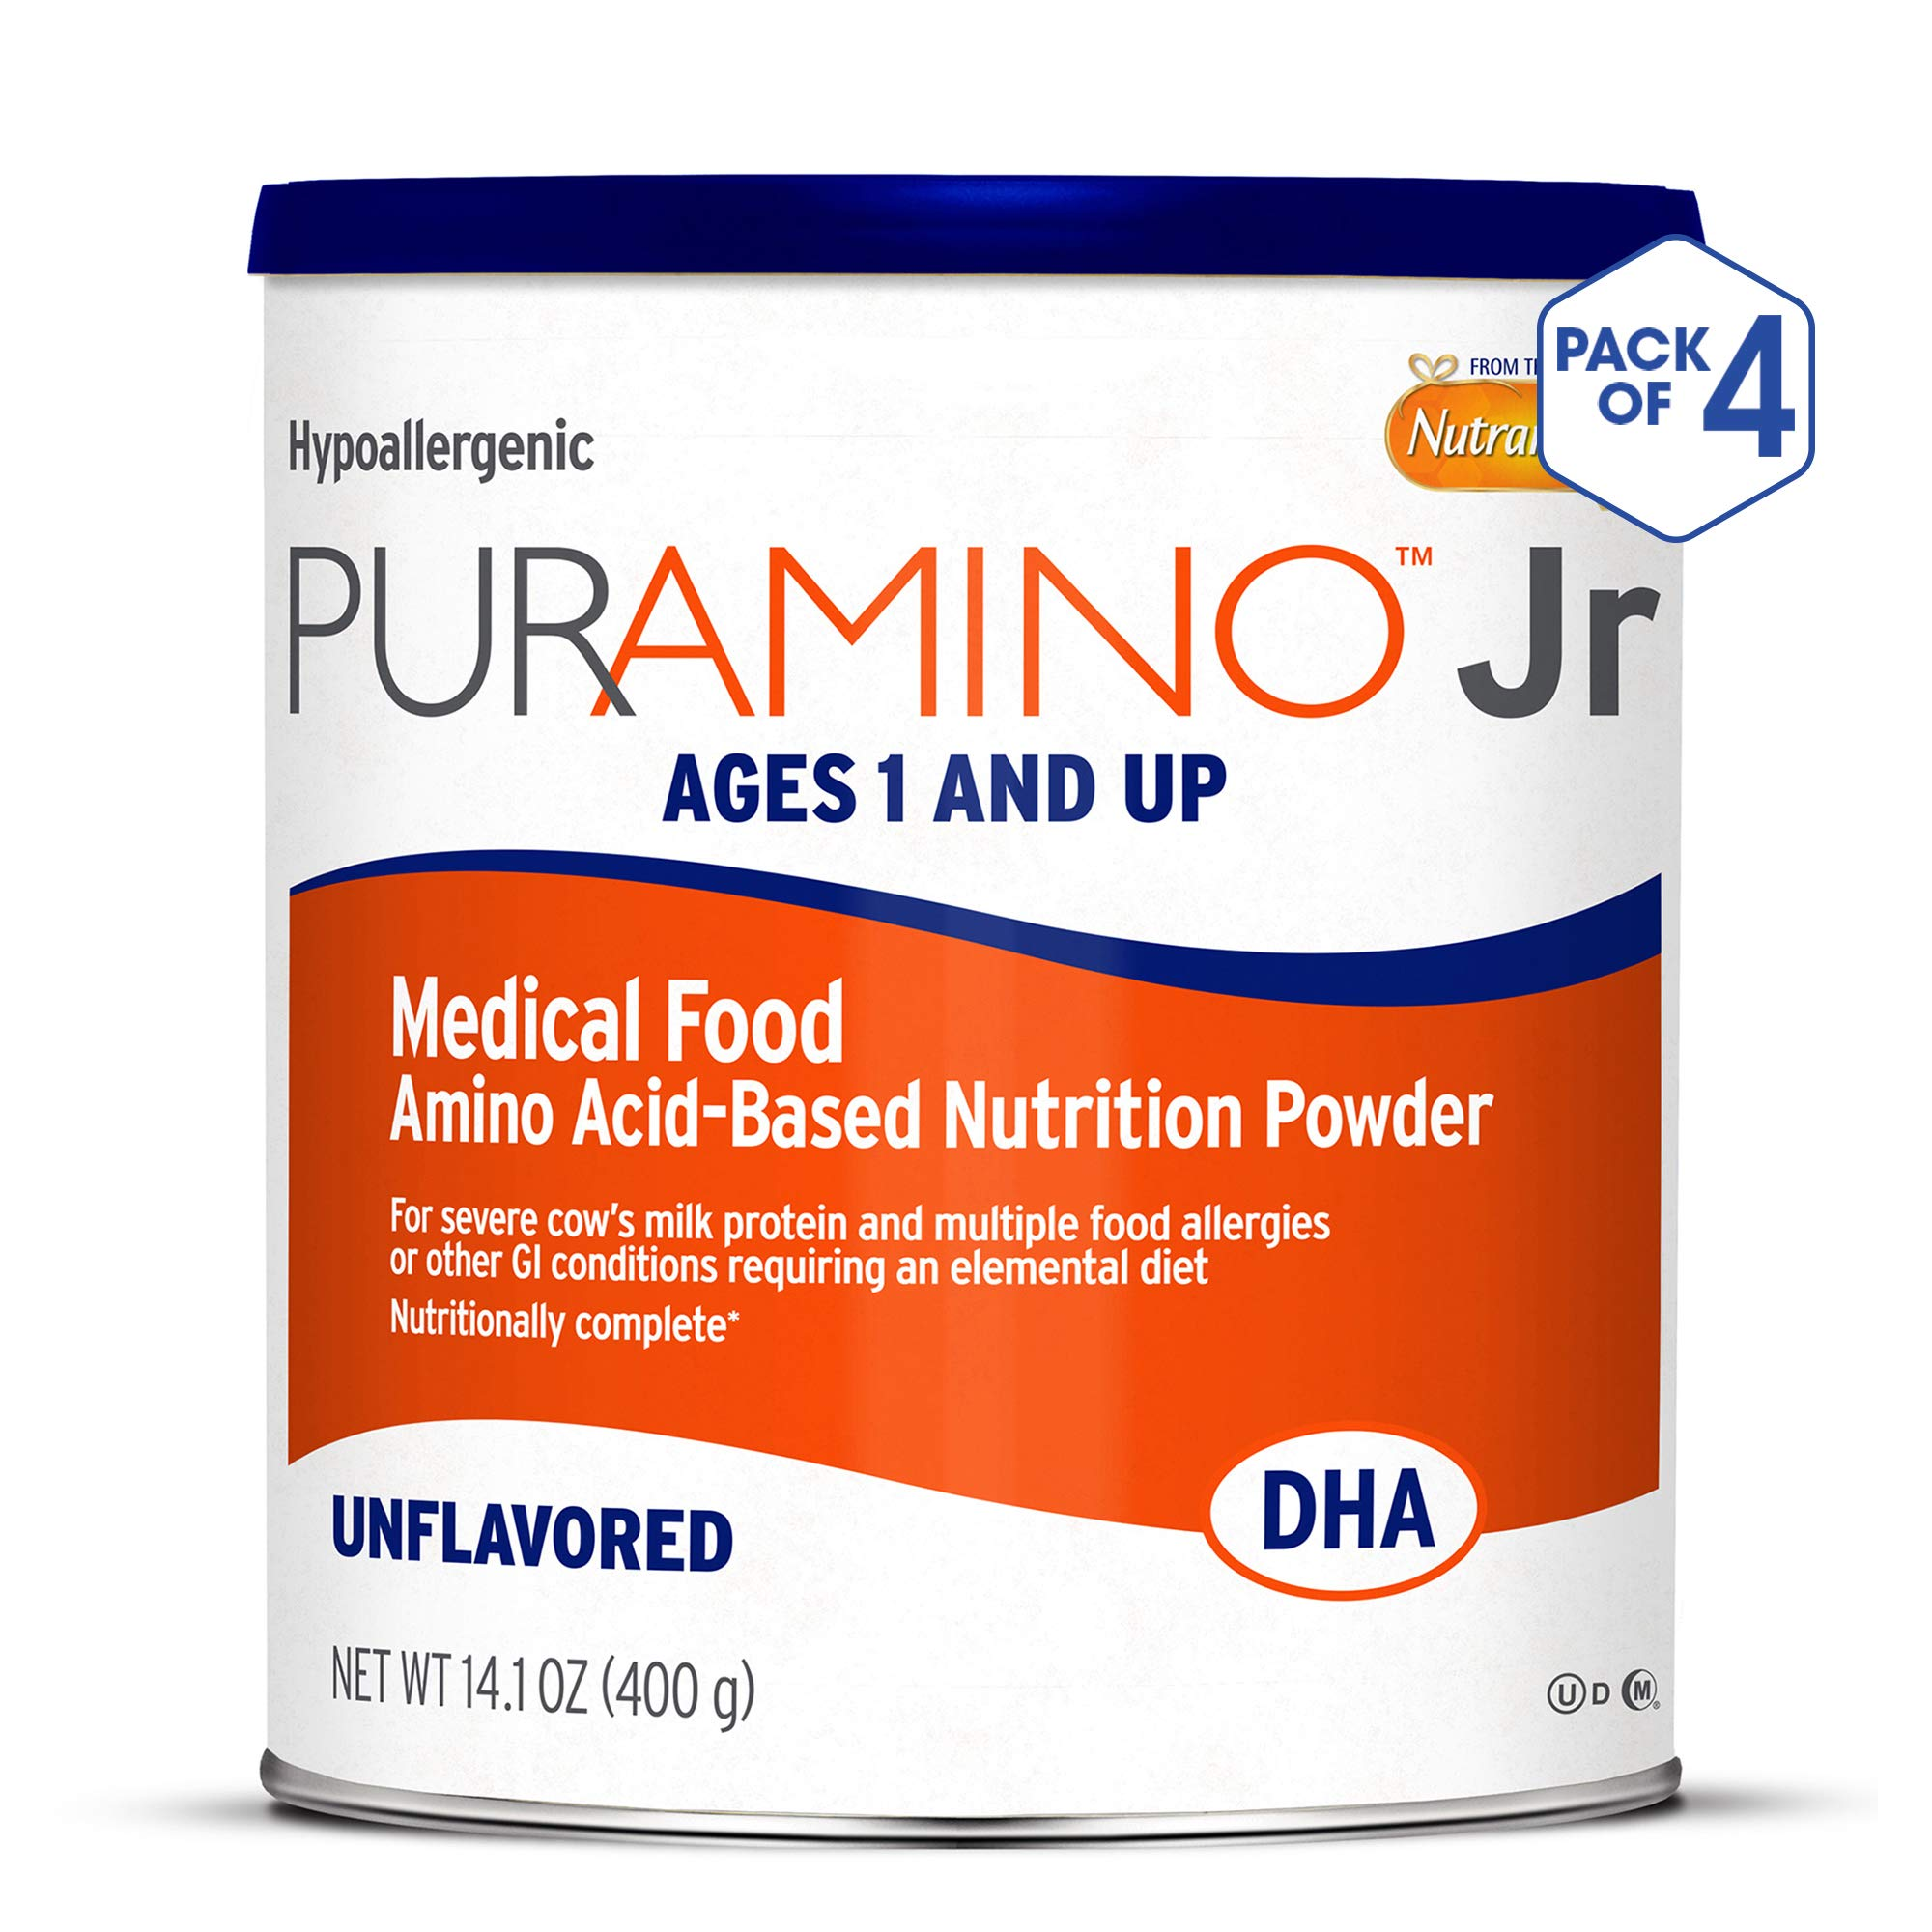 PurAmino Junior Hypoallergenic Unflavored Toddler Drink Powder for Severe Food Allergies, 14.1 Ounce (Pack of 4) - Omega 3 DHA, Probiotics, Iron, Immune Support by PurAmino